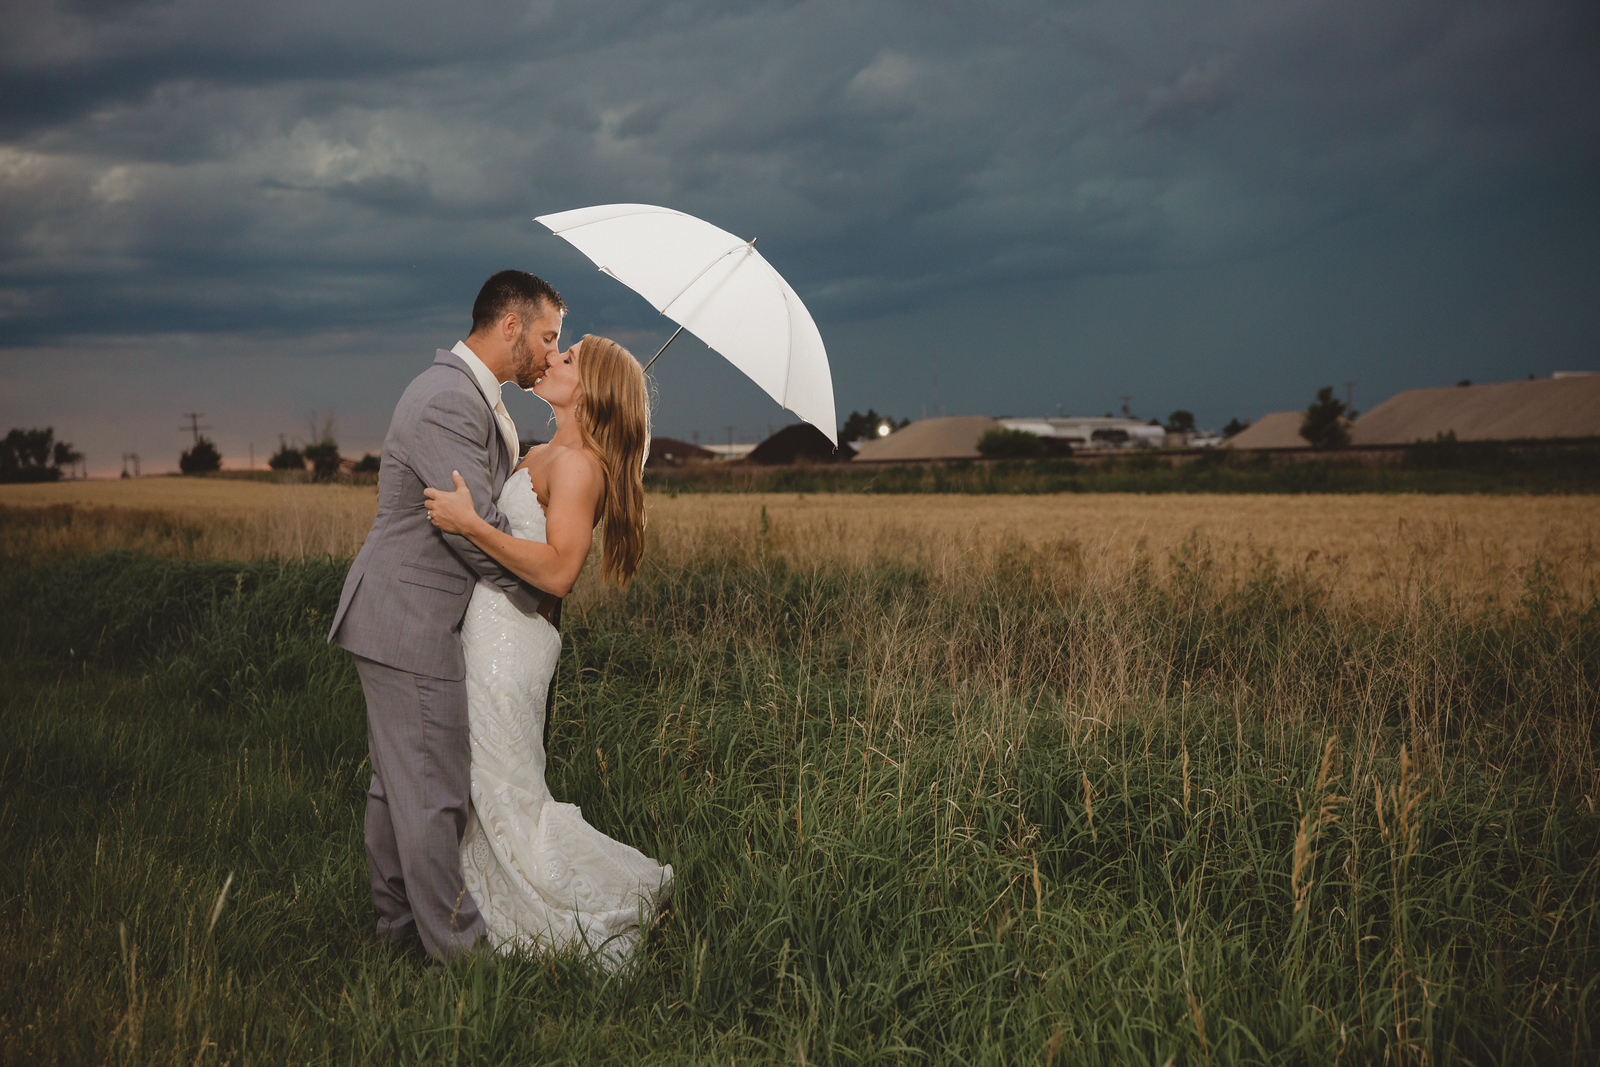 bride and groom share a moment in the rain